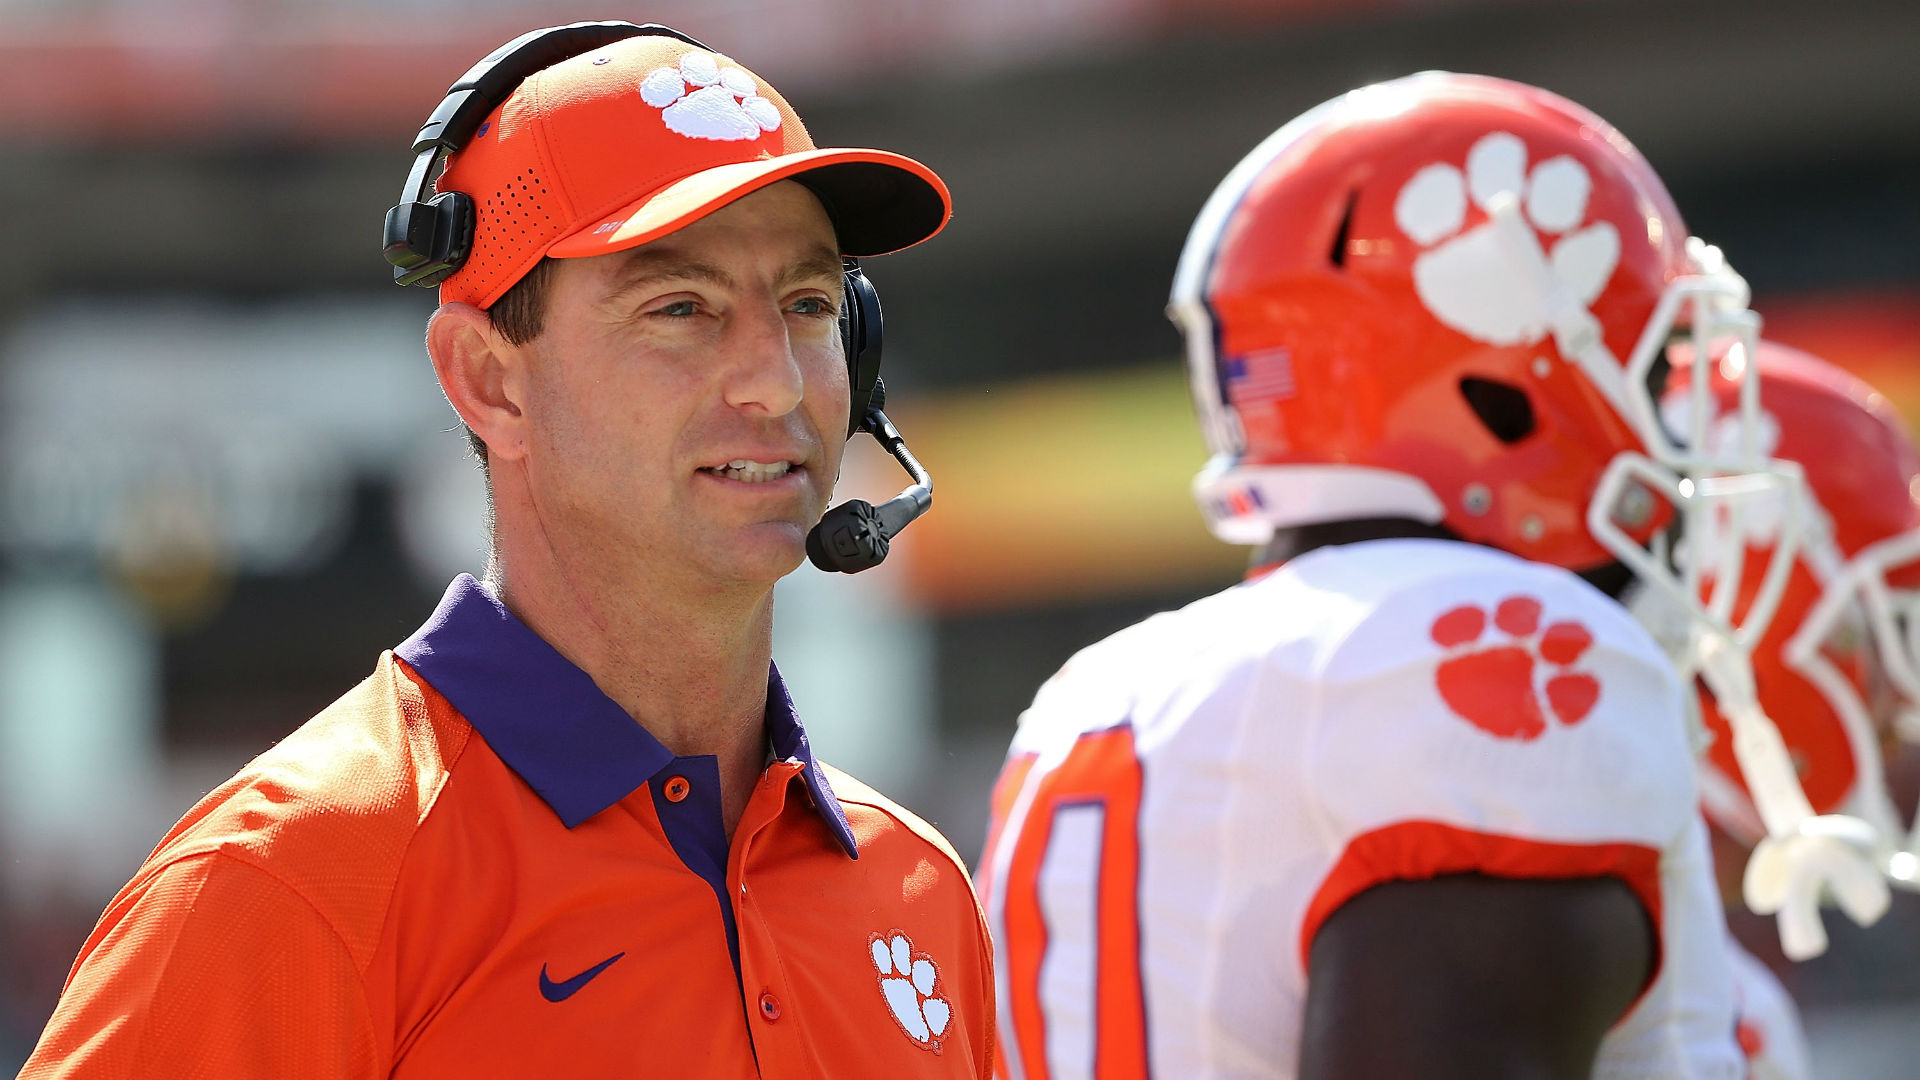 NC State coach Dave Doeren responds to Dabo Swinney's criticism